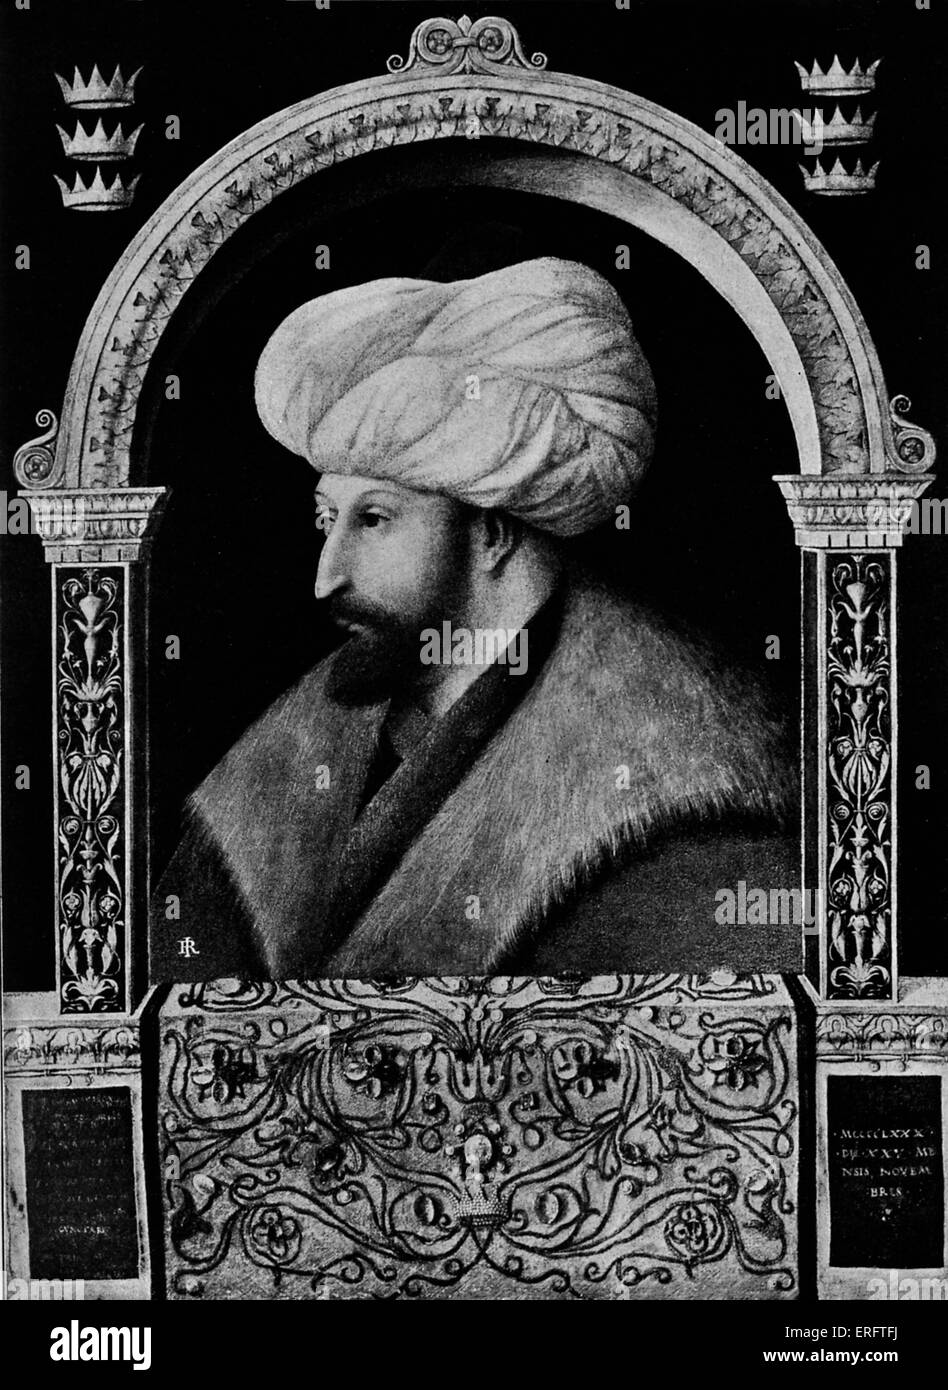 Sultan Muhammad II (also known as Mehmet II or Muhammad the Conqueror) - after a painting by Gentile Bellini.  Reign: - Stock Image